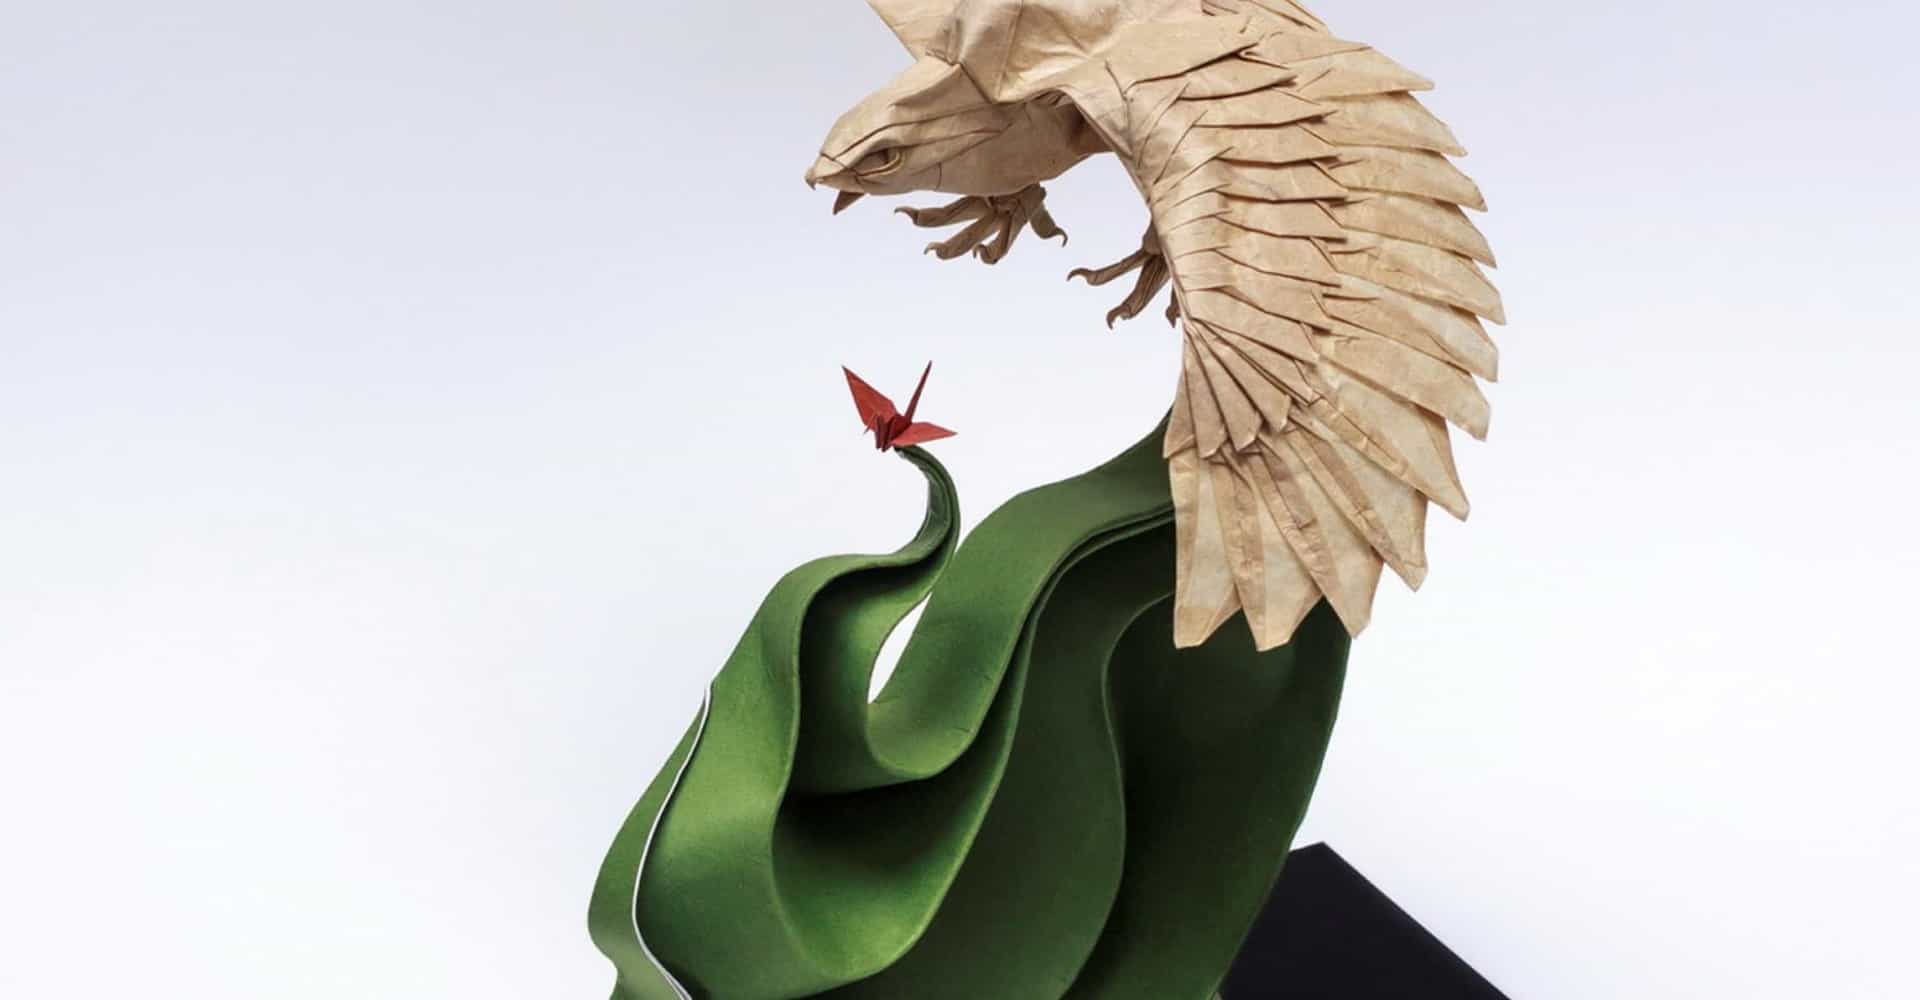 Discover origami, the ancient art of paper folding